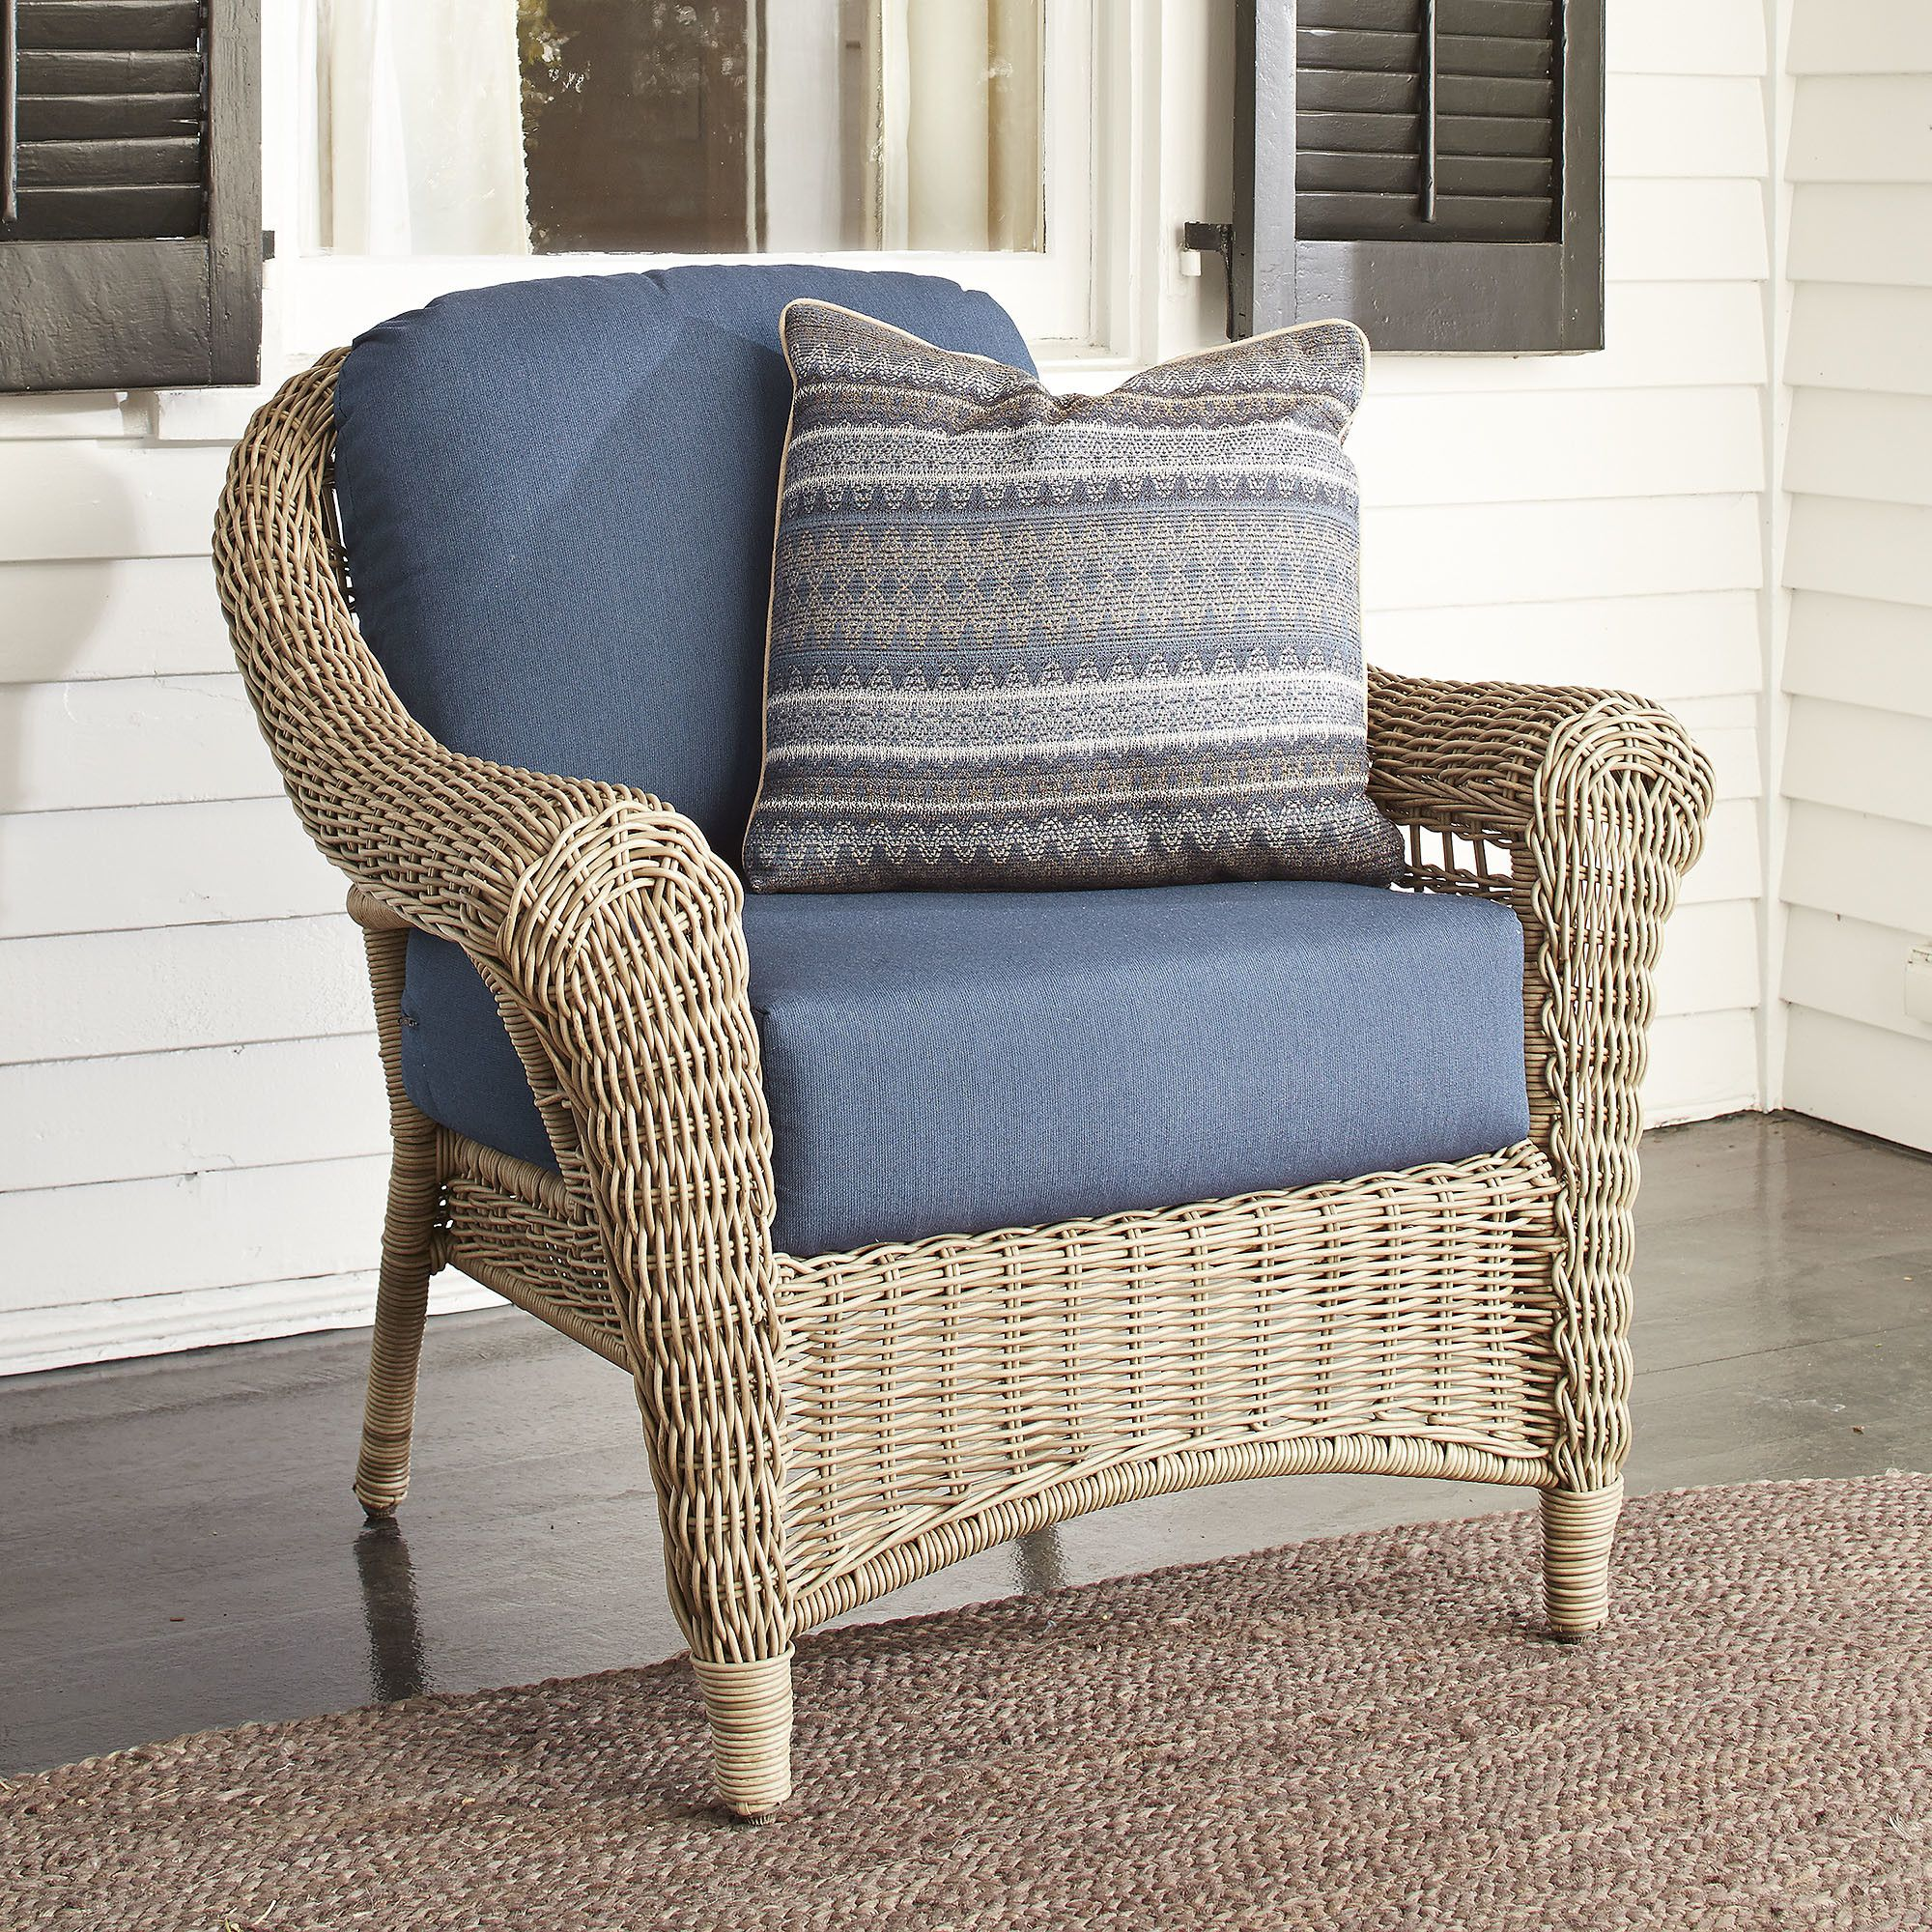 Lynwood Wicker Chair with Sunbrella Cushions With